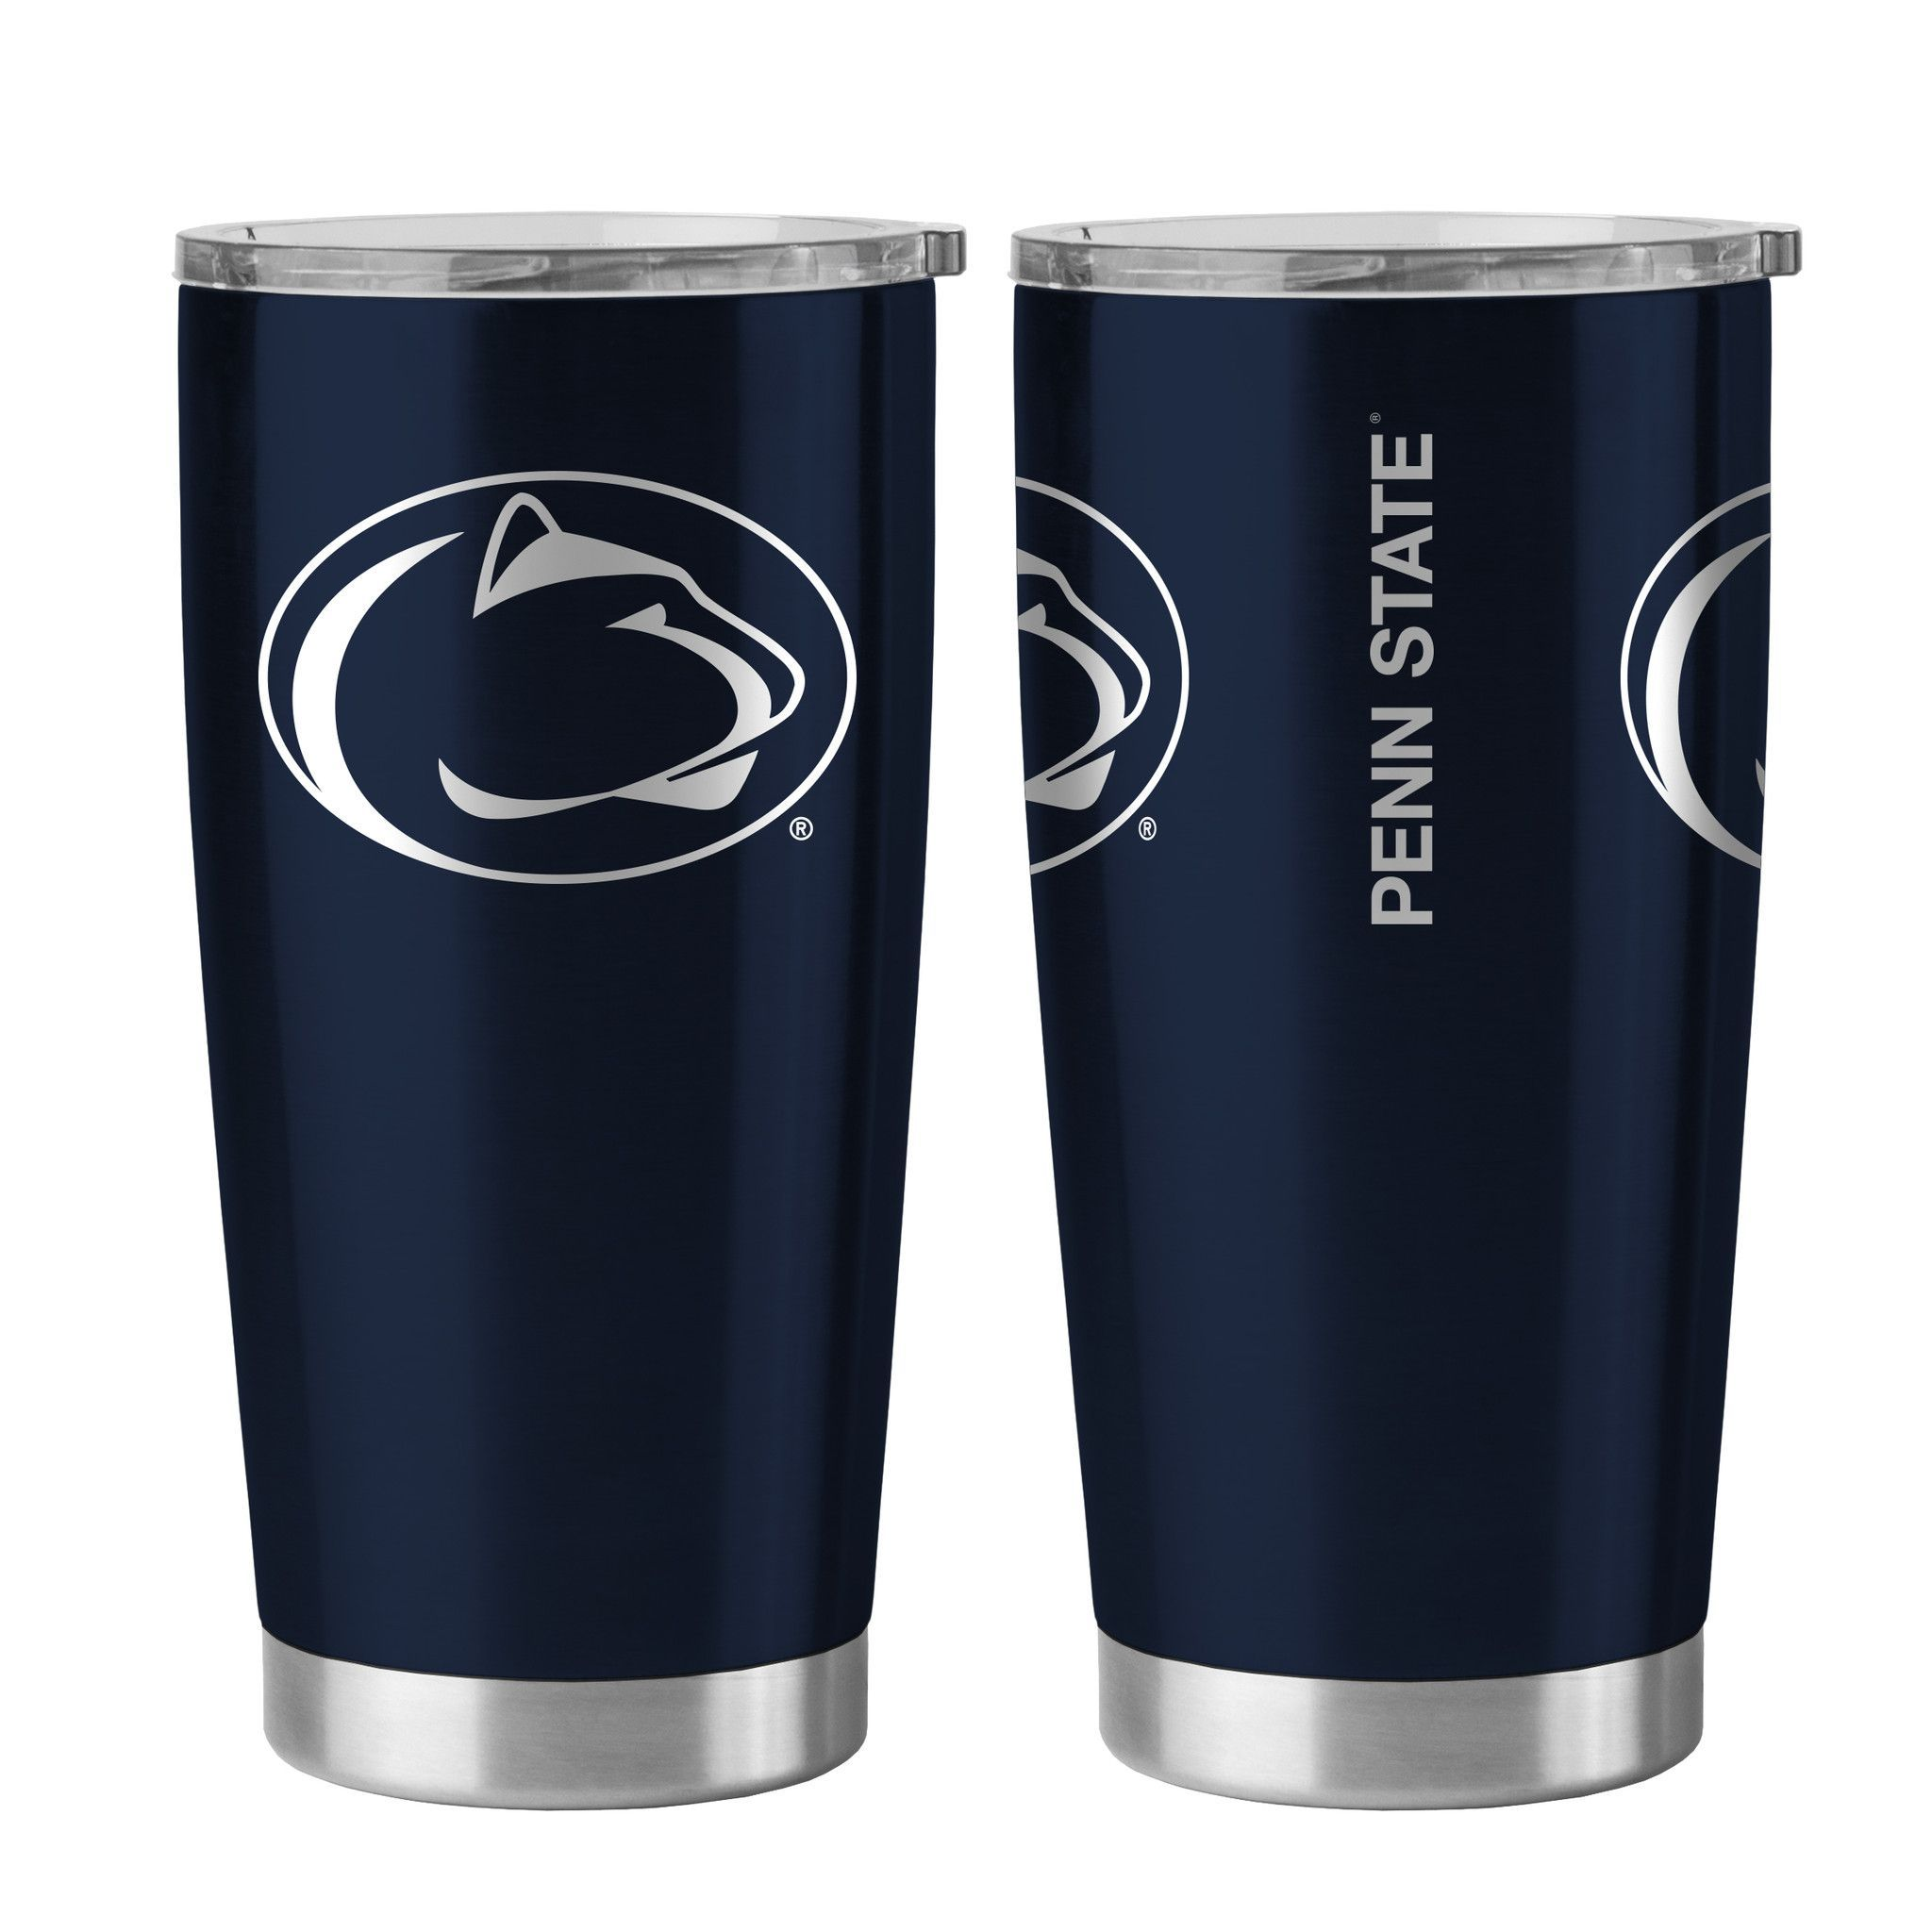 Penn State Nittany Lions 30oz Vacuum Insulated Eagle Stainless Steel Party Cup